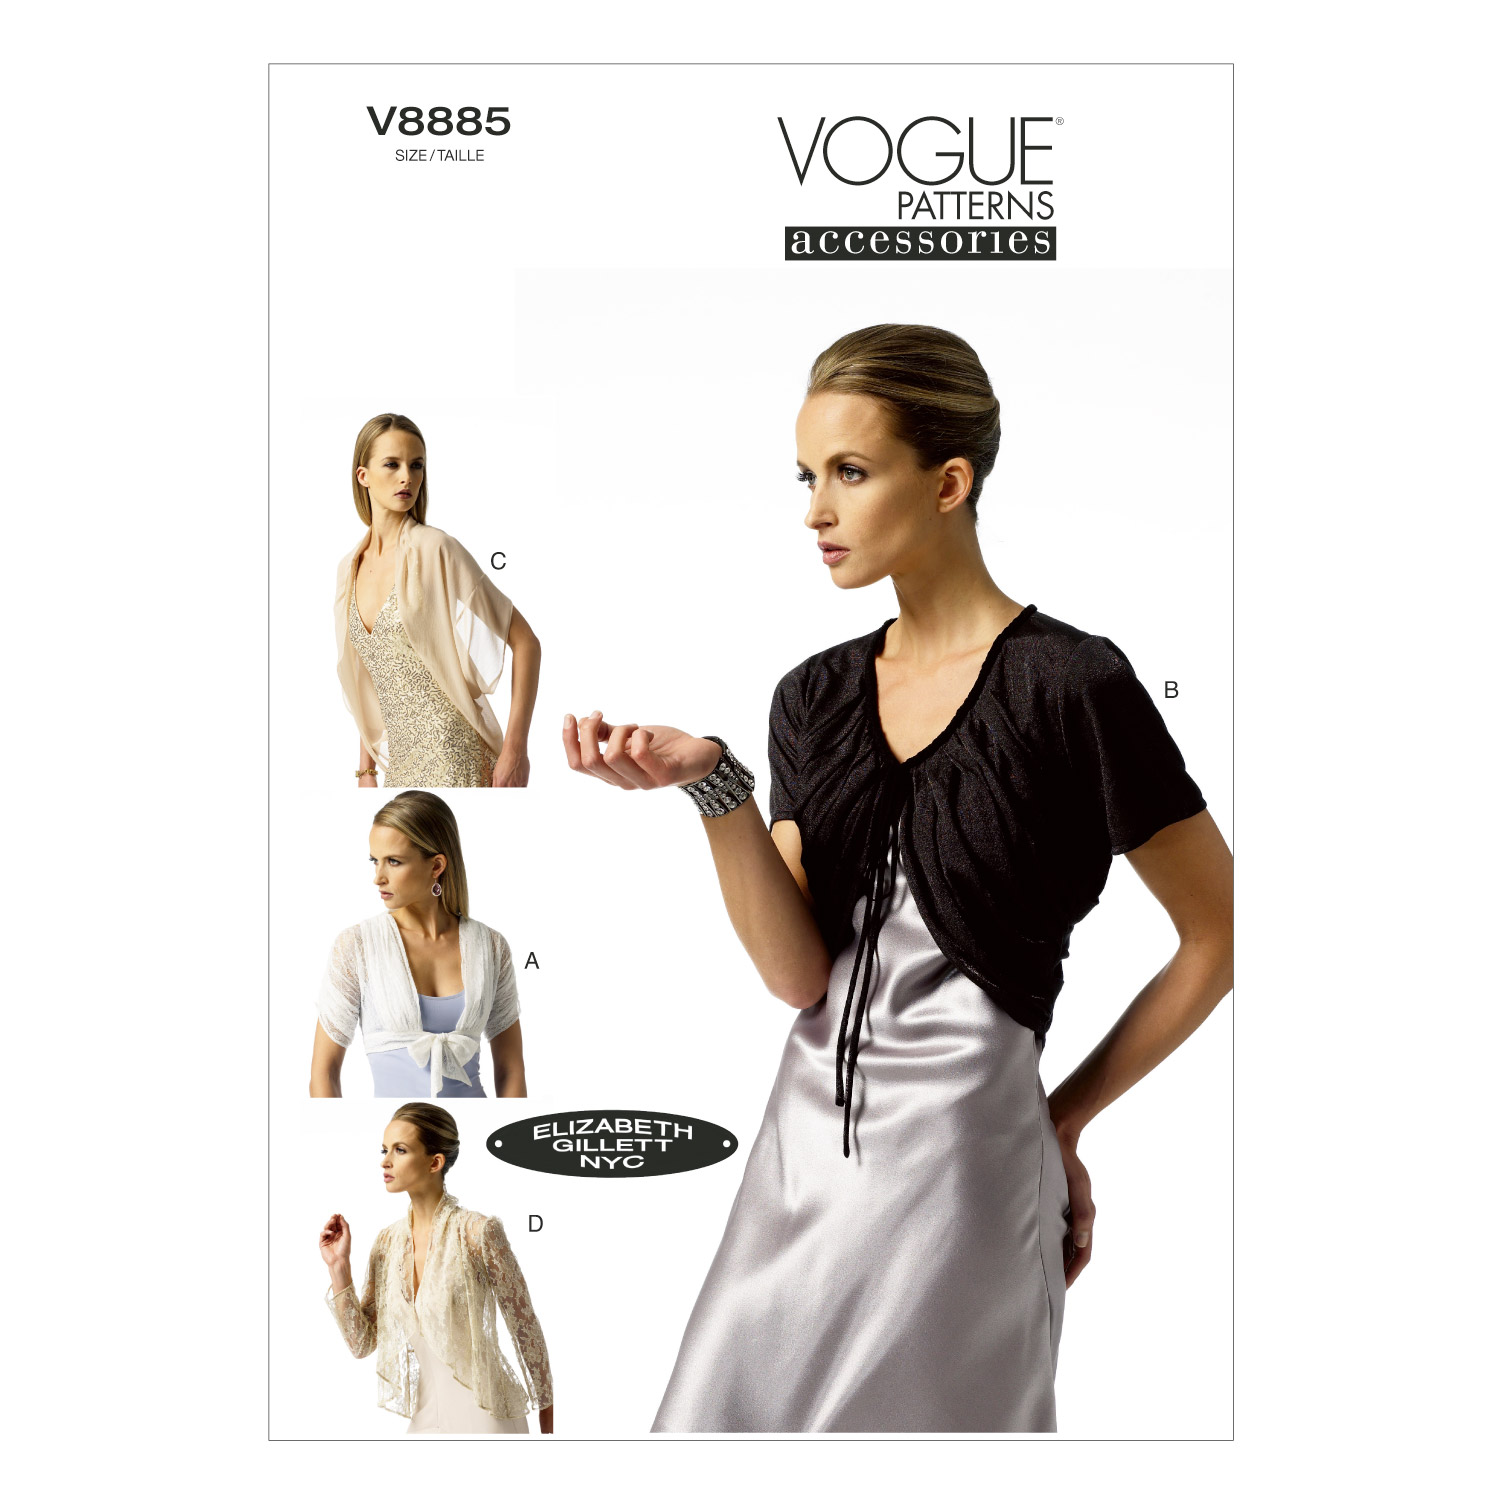 Vogue Patterns Misses Jacket-V8885